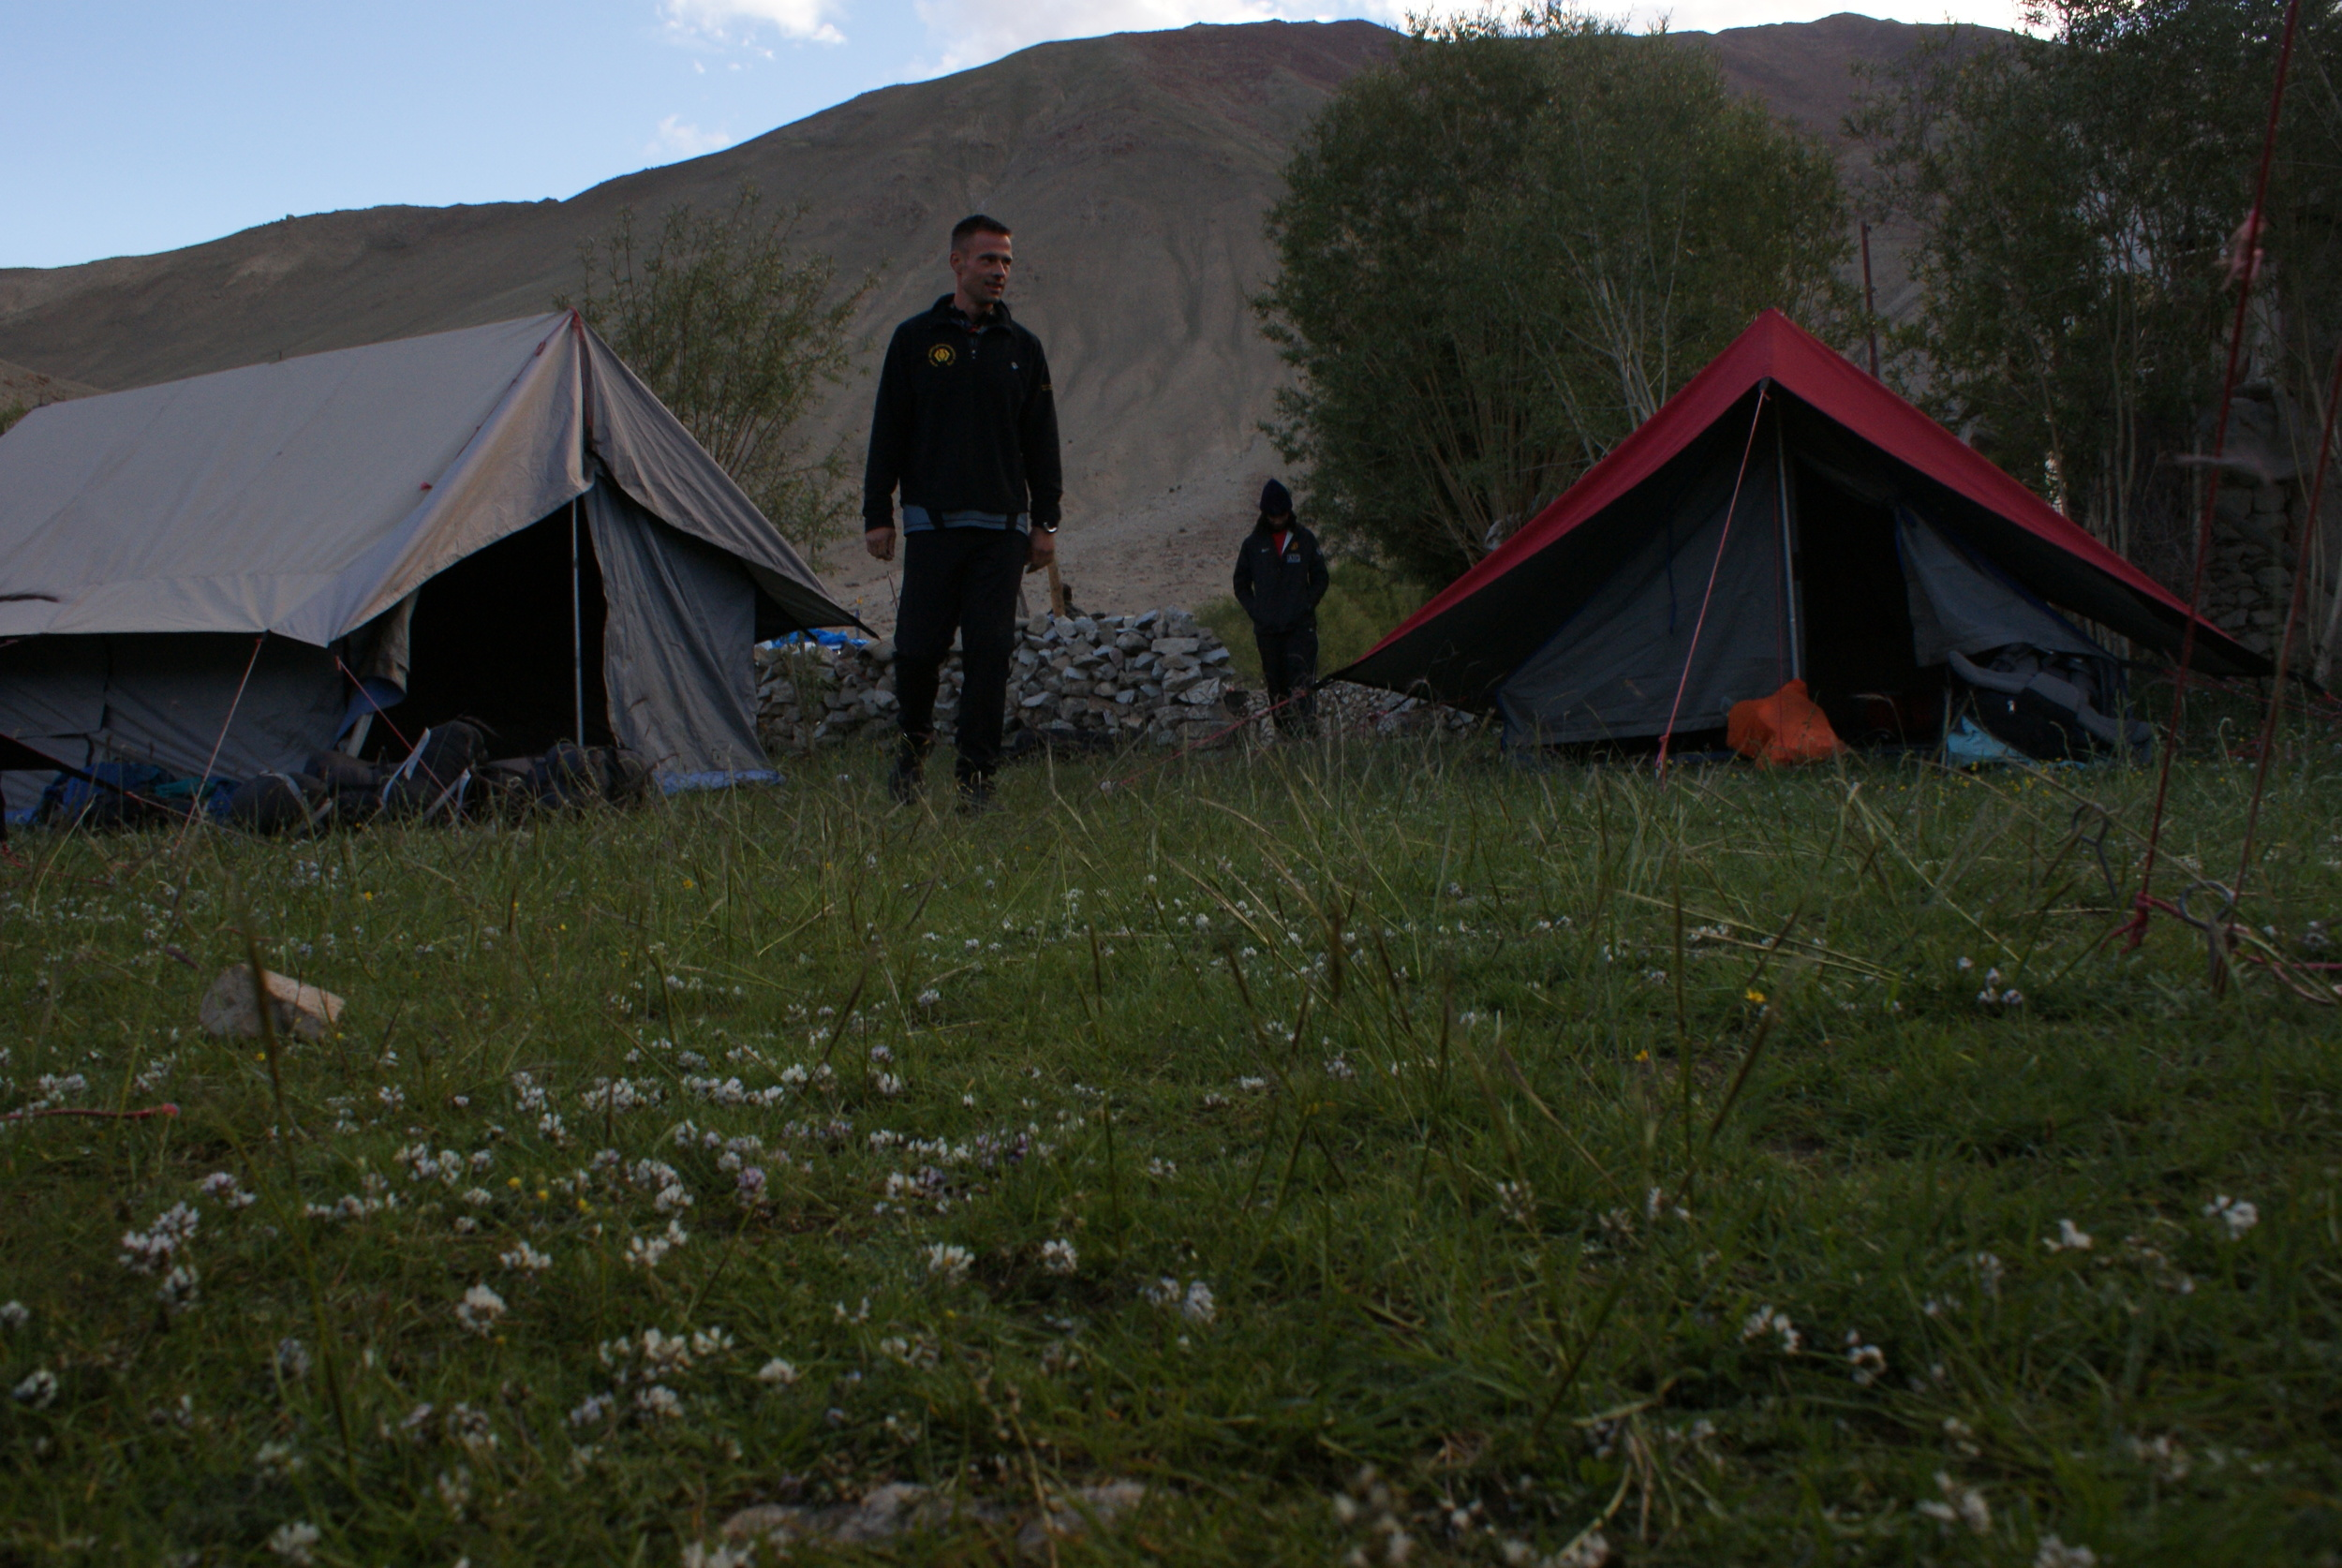 Checking the camp site